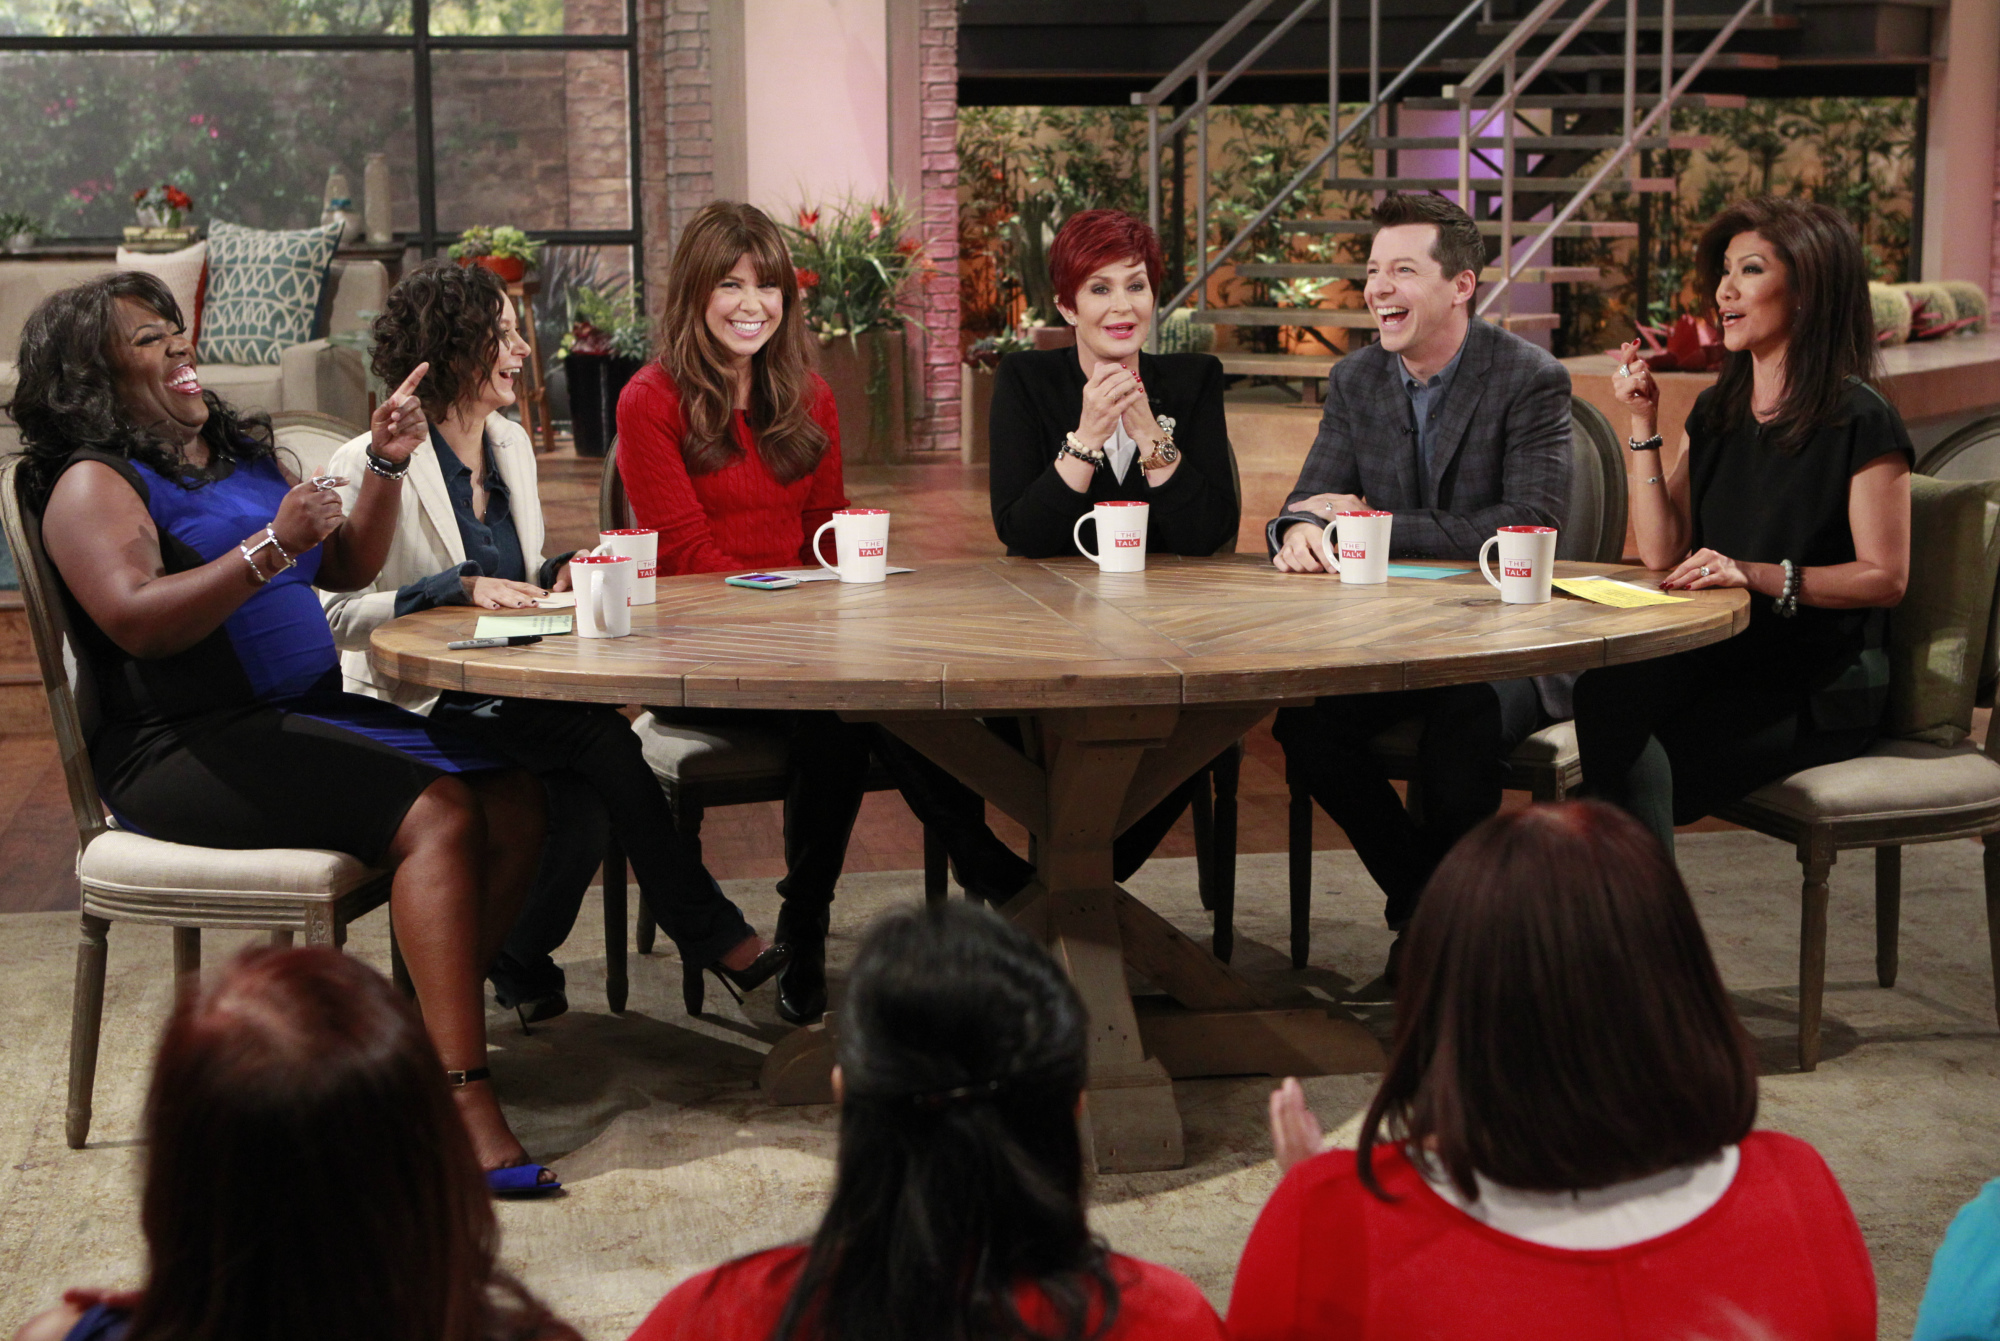 5. Having the hilarious Sean Hayes on as a guest co-host.